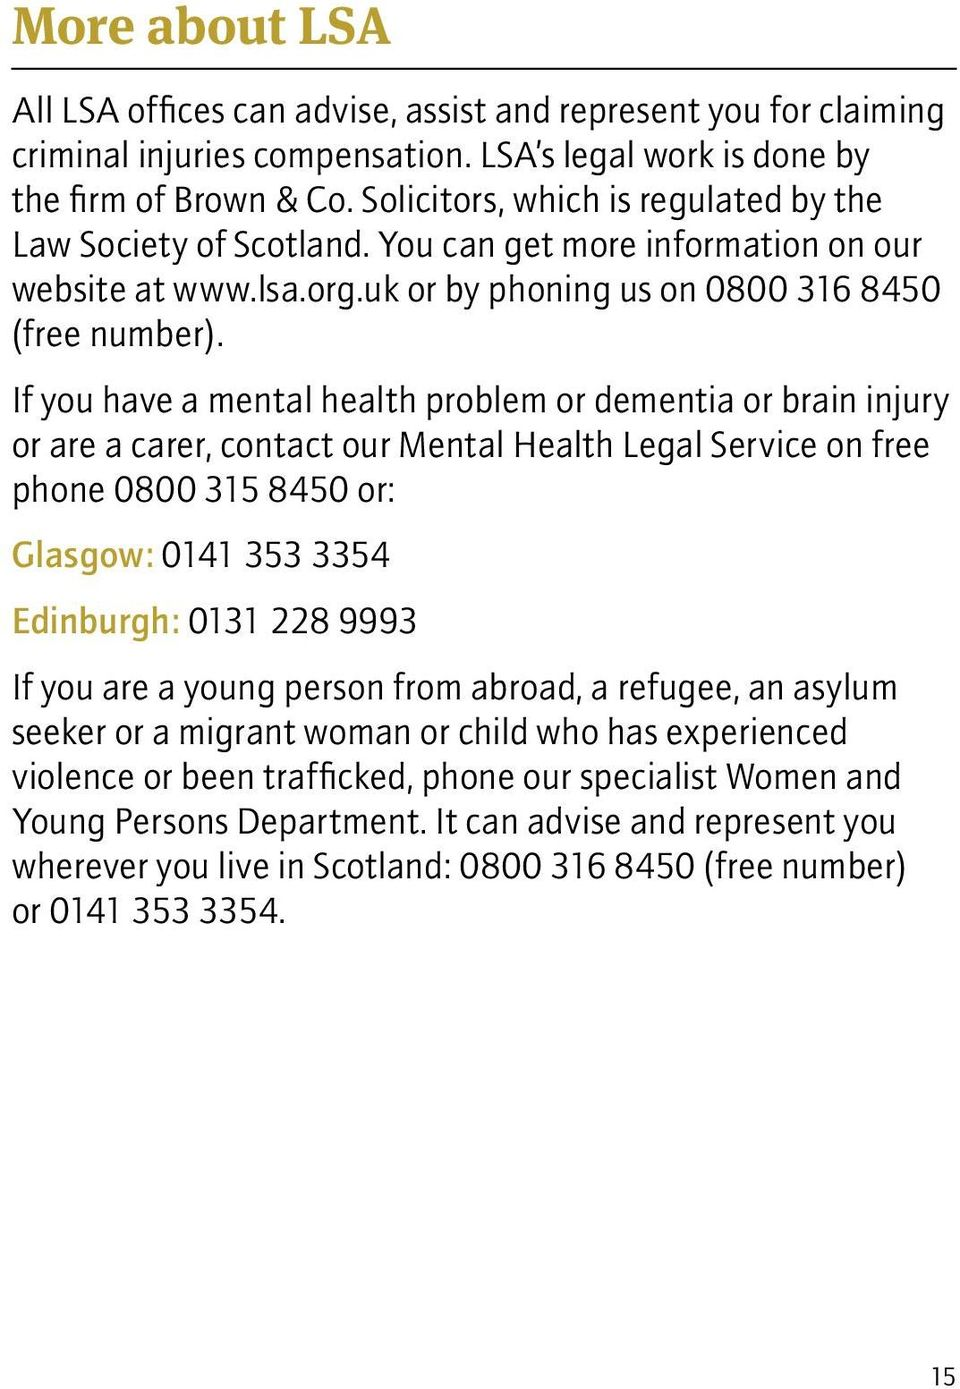 If you have a mental health problem or dementia or brain injury or are a carer, contact our Mental Health Legal Service on free phone 0800 315 8450 or: Glasgow: 0141 353 3354 Edinburgh: 0131 228 9993